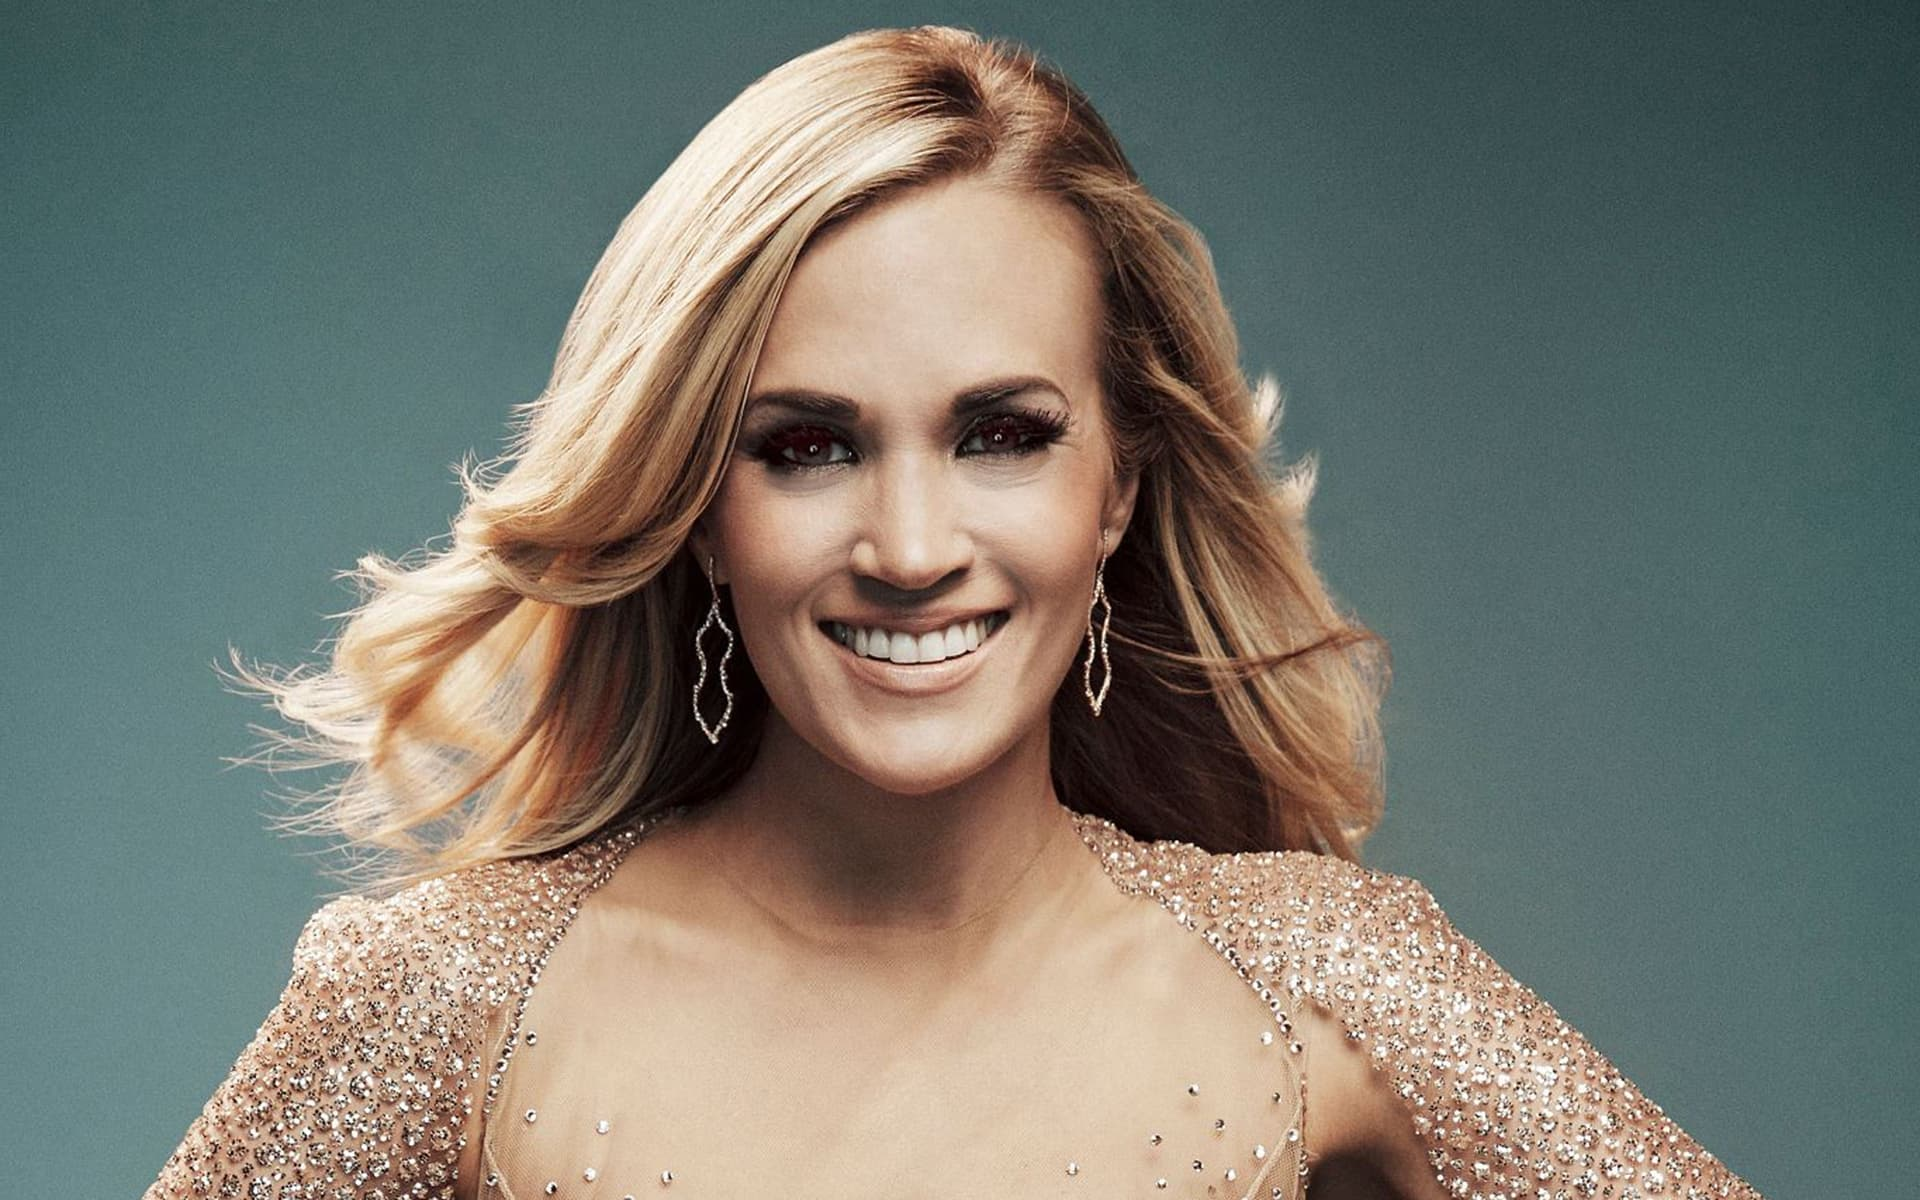 carrie underwood - photo #21